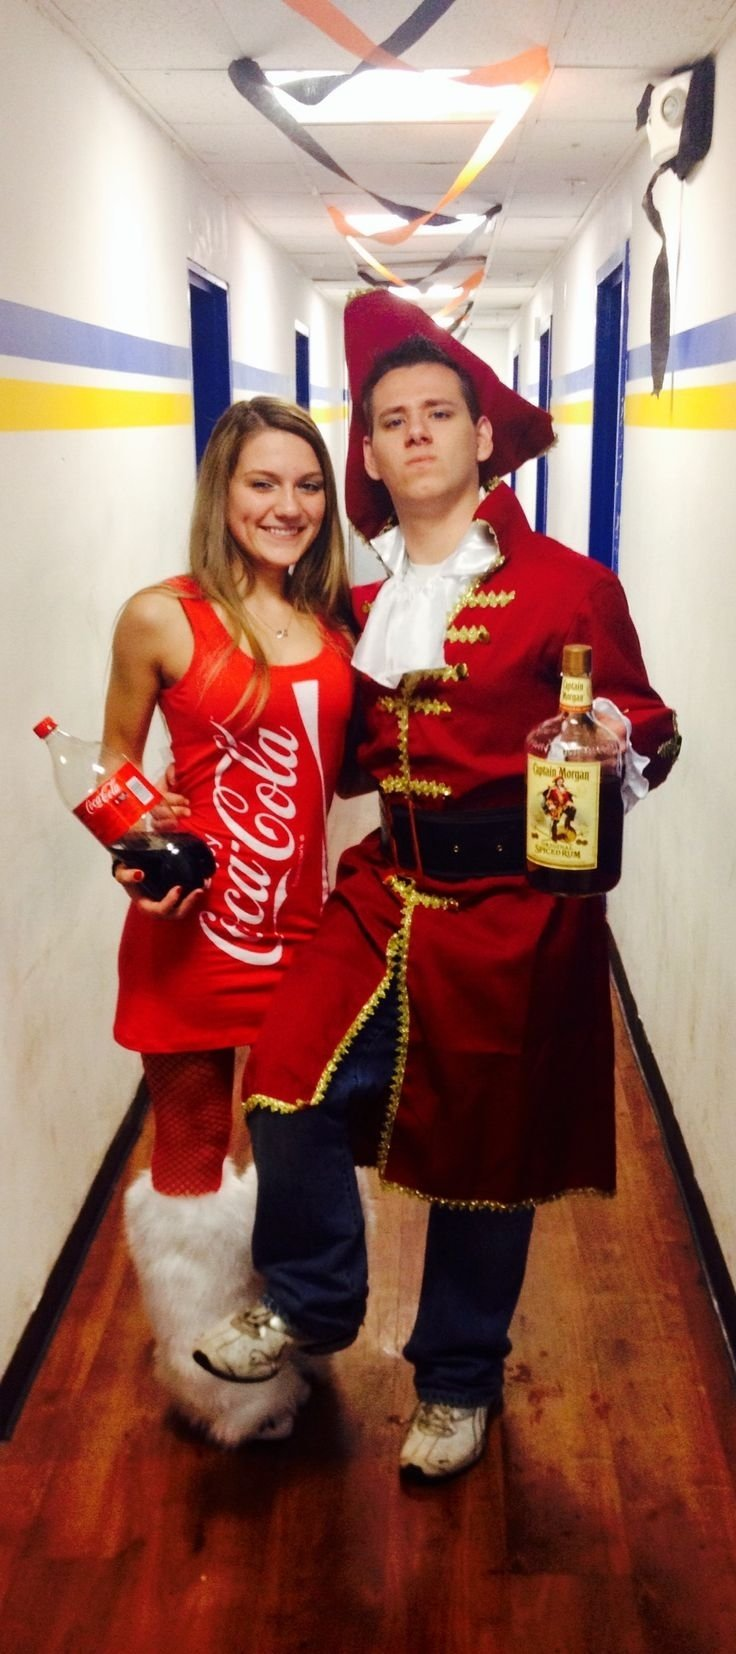 10 Great Awesome Couple Halloween Costume Ideas 63 best pirate costumes ahoy images on pinterest adult costumes 1 2021